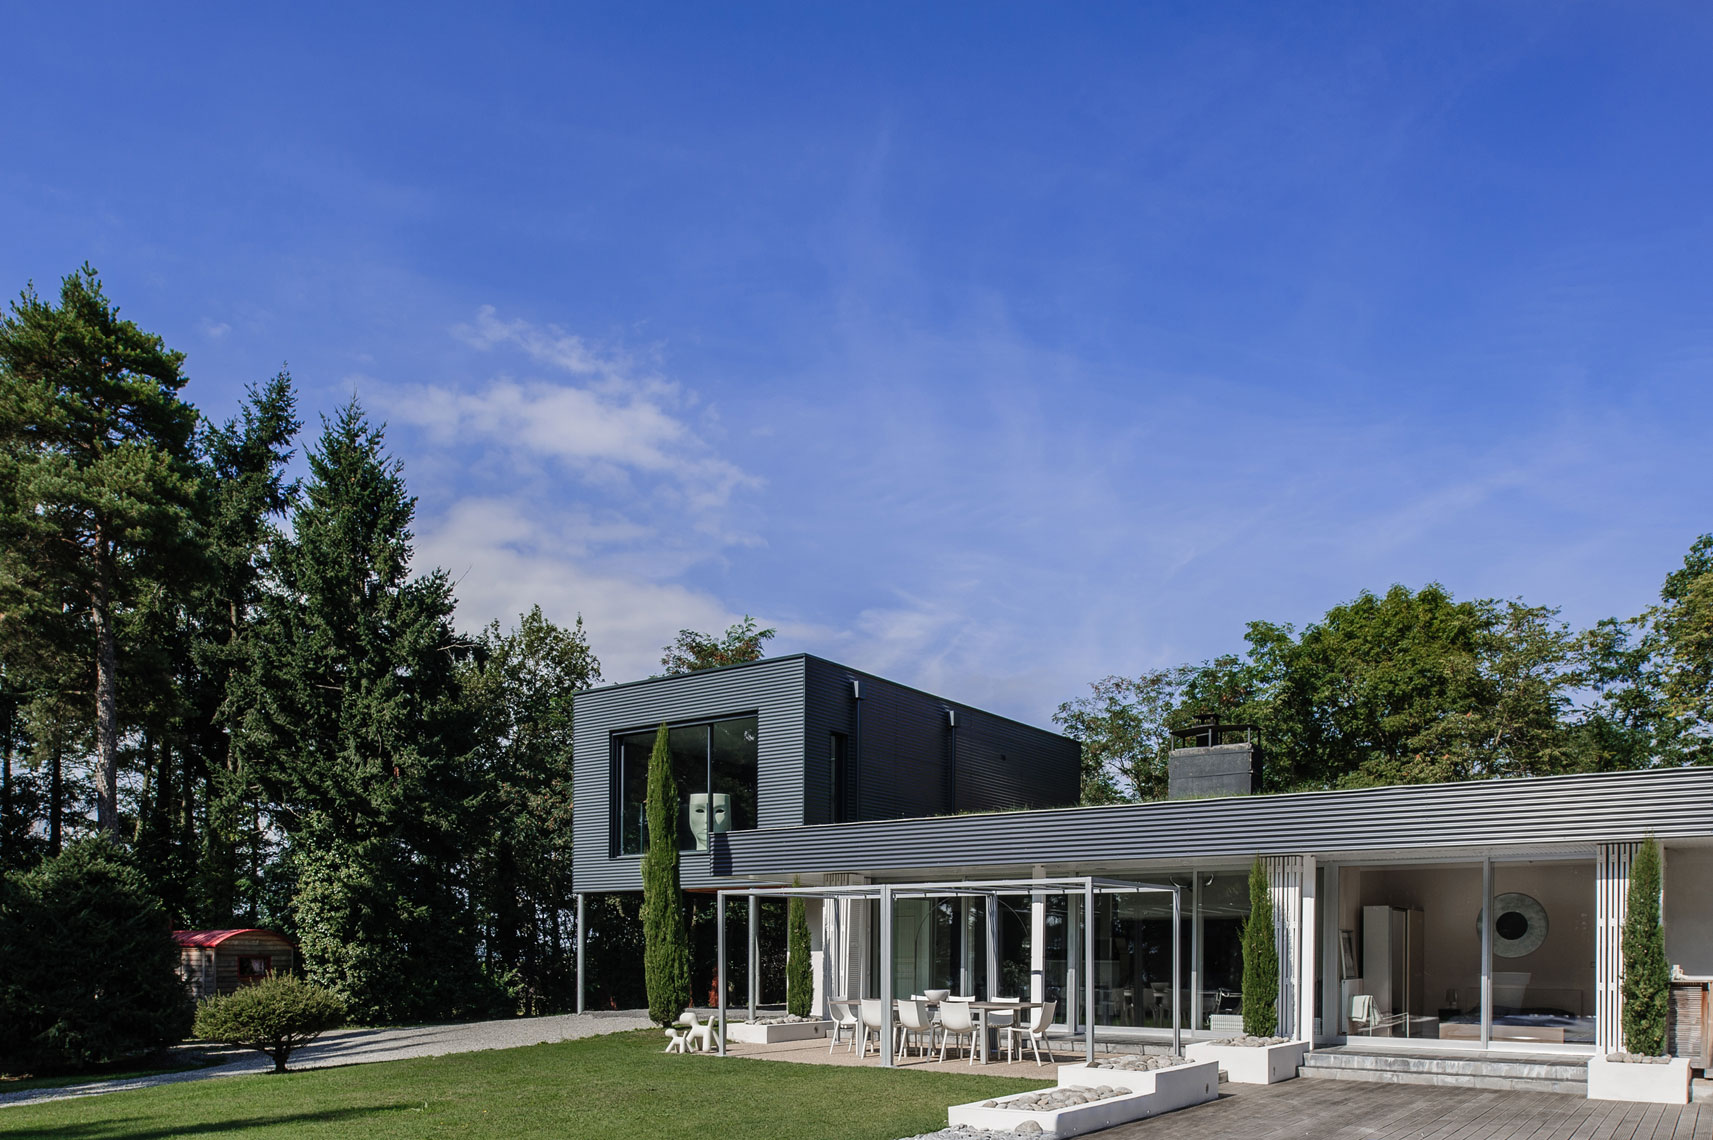 The-Metal-House---victor-perez-architecture-photographer-02.jpg